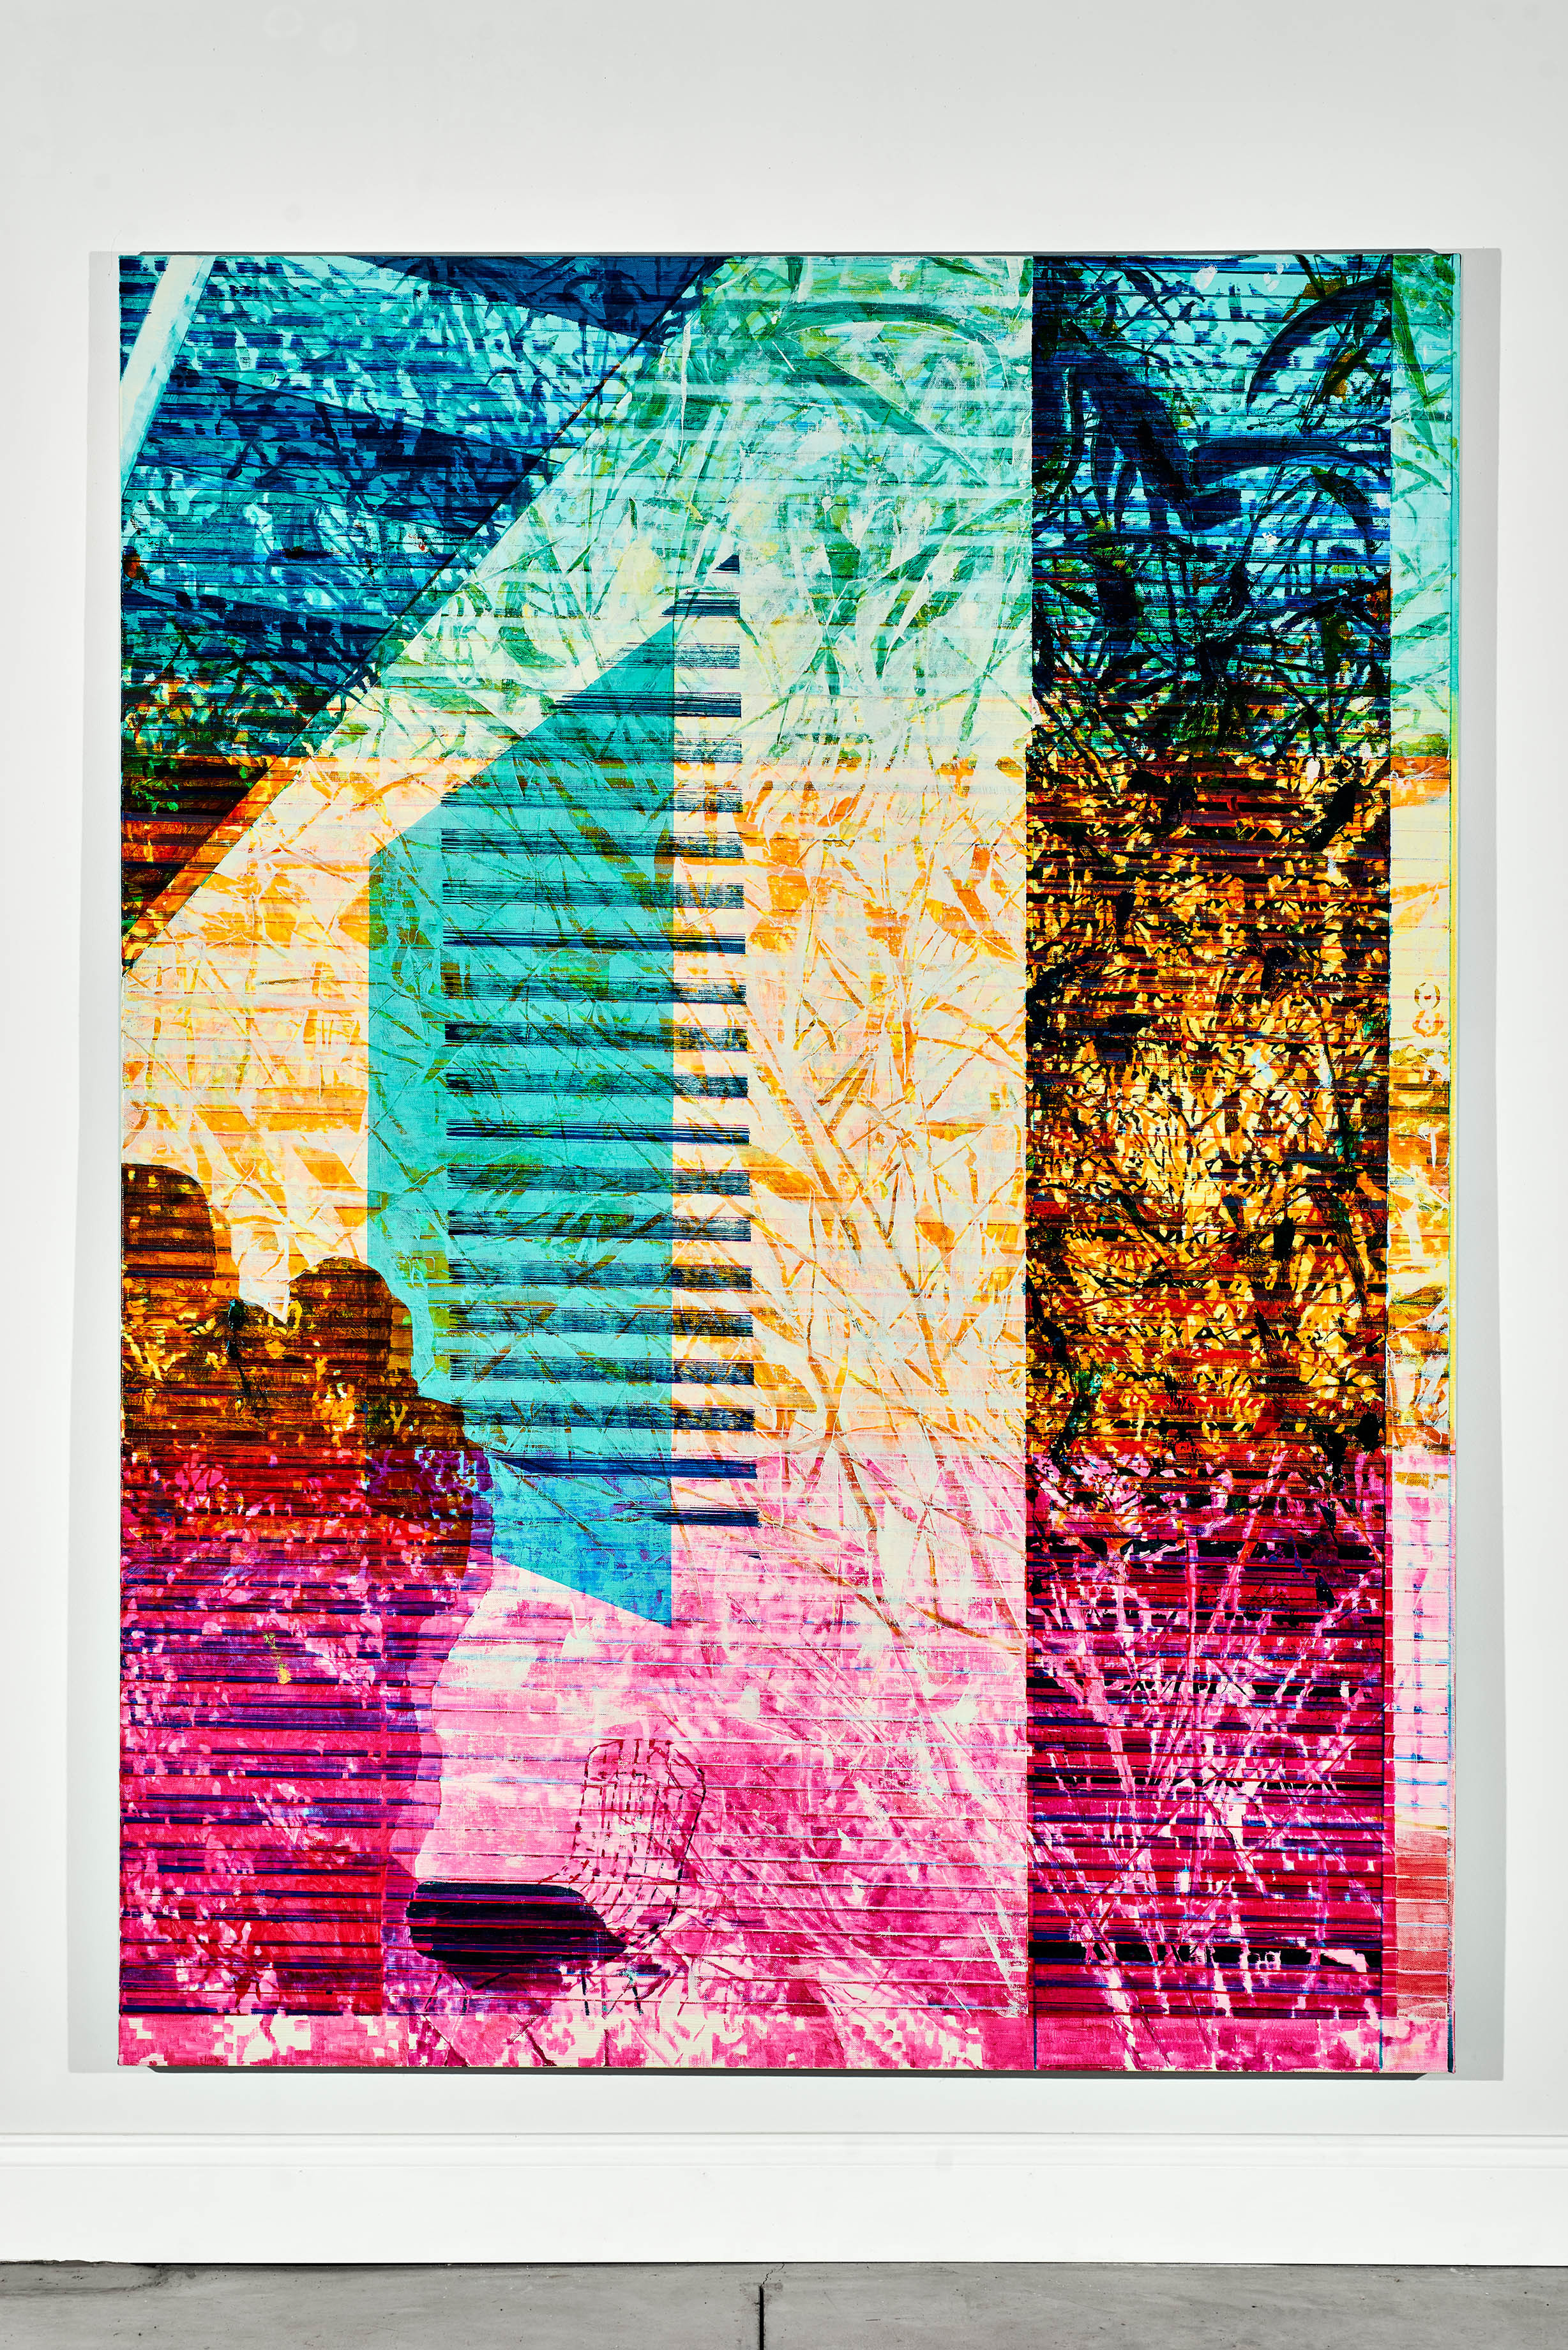 Jered Sprecher, 8.25 Minutes (detail), six oil on linen paintings, wool rug, drawings on paper, various printed images on paper, and hanging hardware, Approximate Dimensions: 20' x 16' x 10', 2017. (Courtesy of Artist)